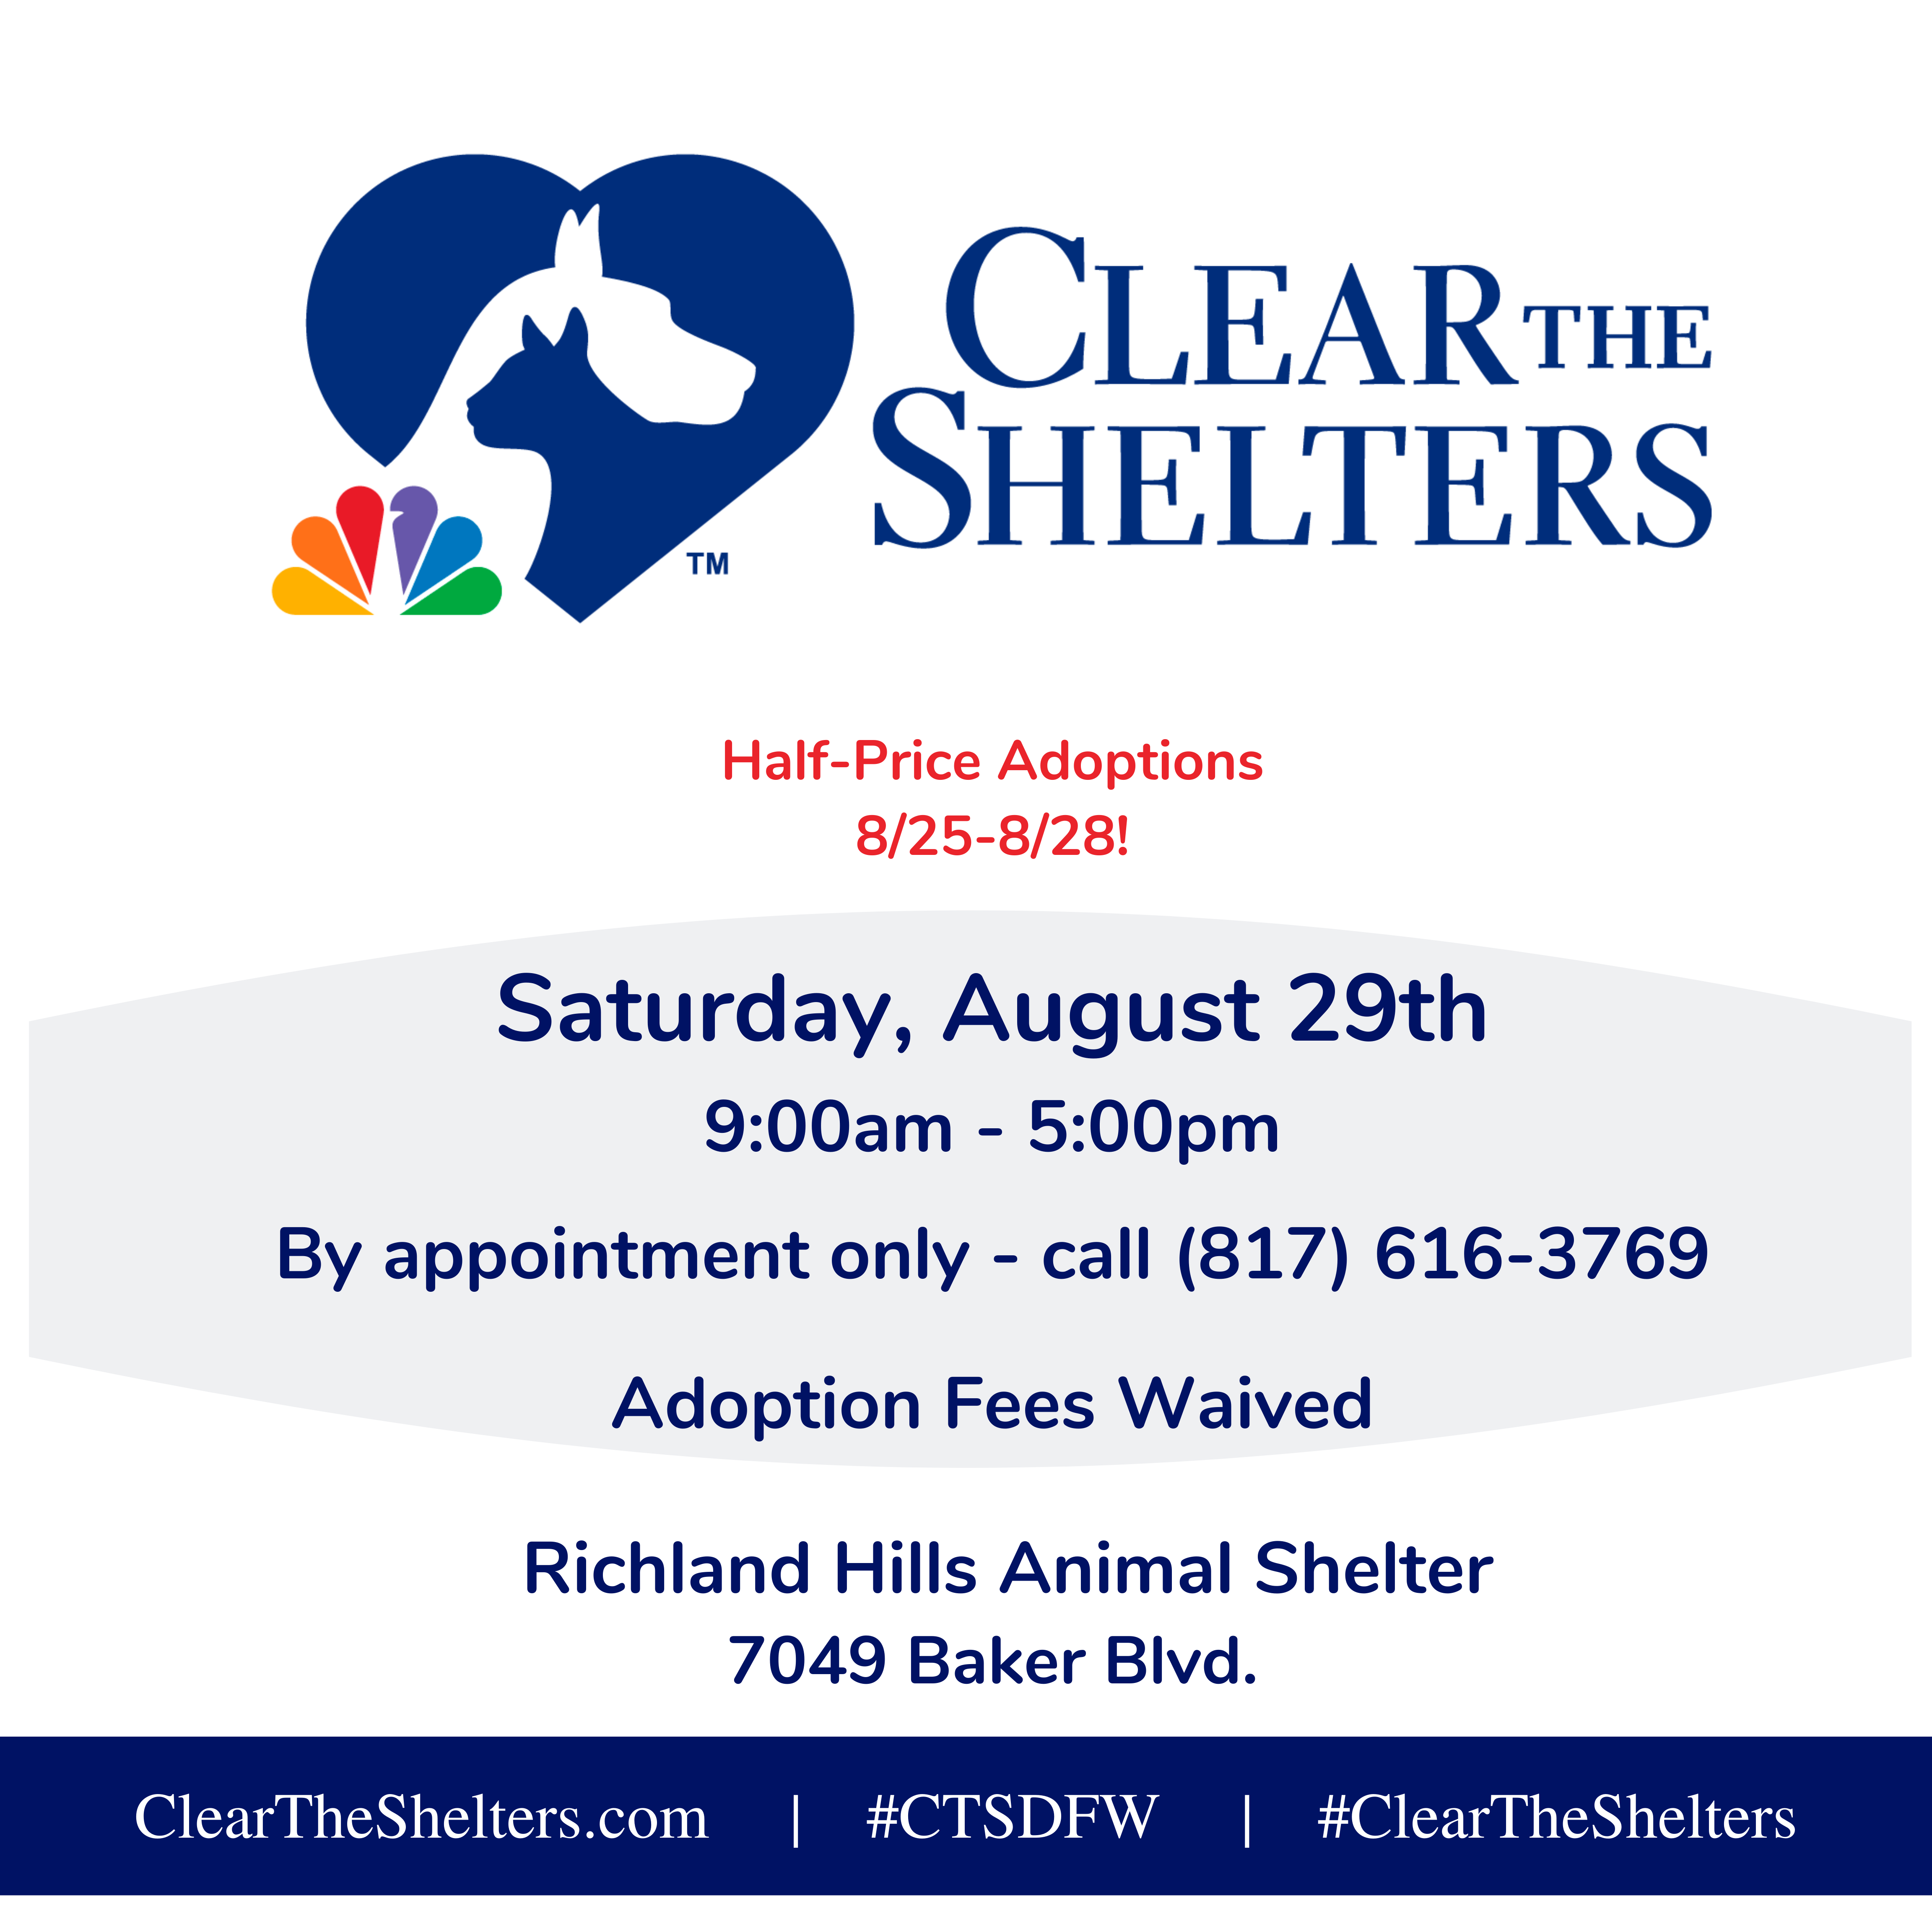 ClearTheShelters.com | #CTSDFW |-2